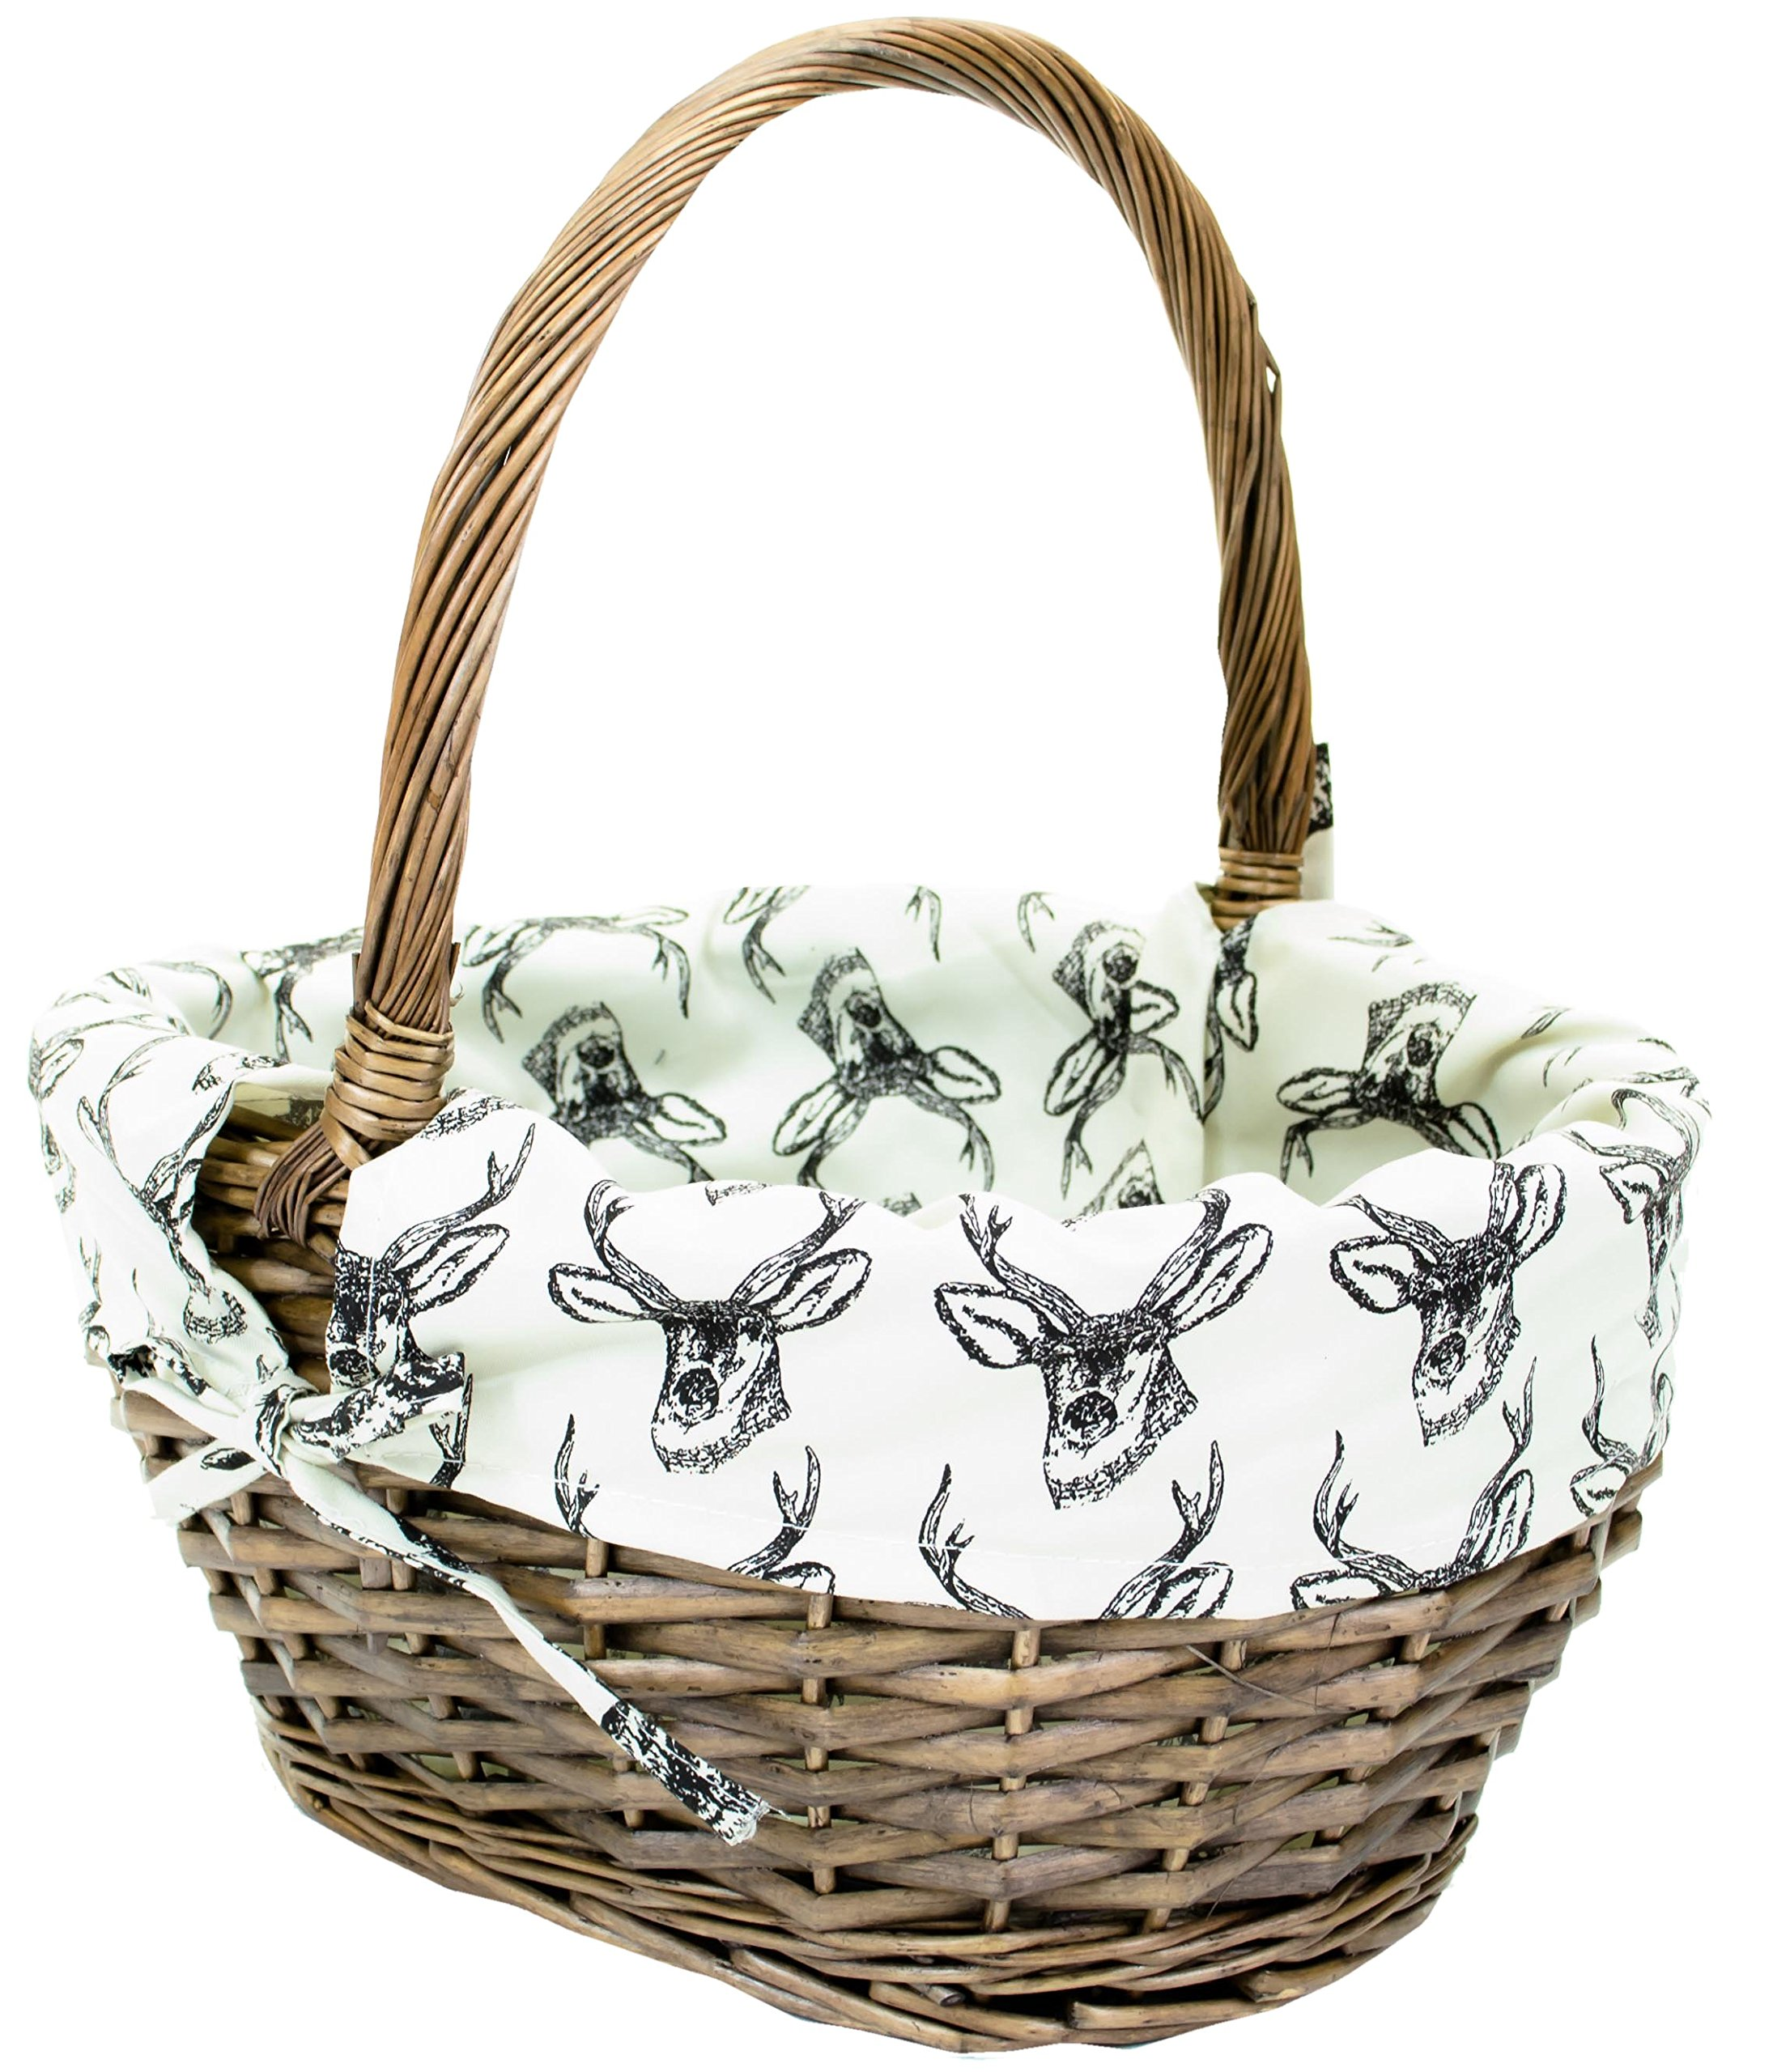 Medium east2eden Brown Wicker Willow Storage Log Hamper Basket with Stag Liner in Choice of Sizes